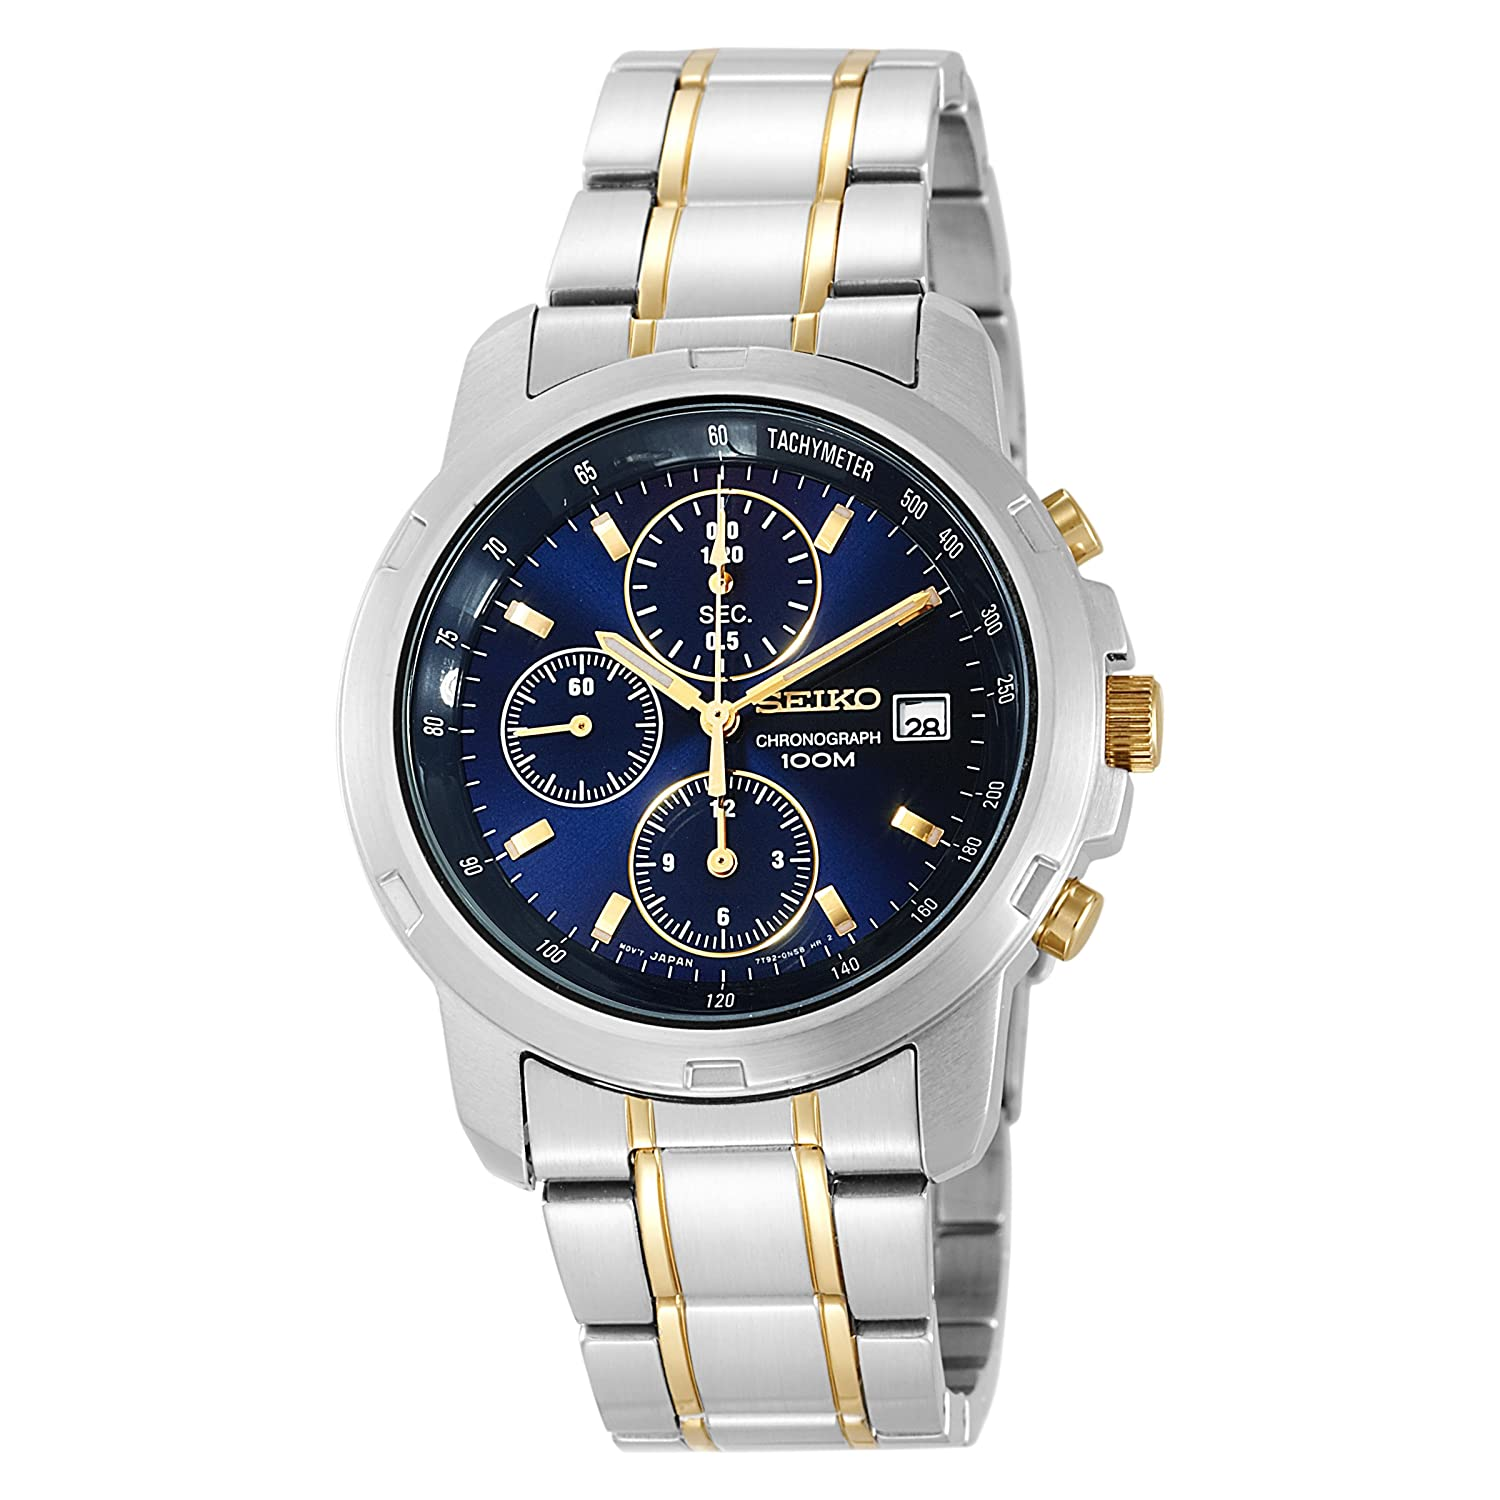 Cool+Watches+For+Men Unique Watches on Two Toned Dress Watches For Men ...